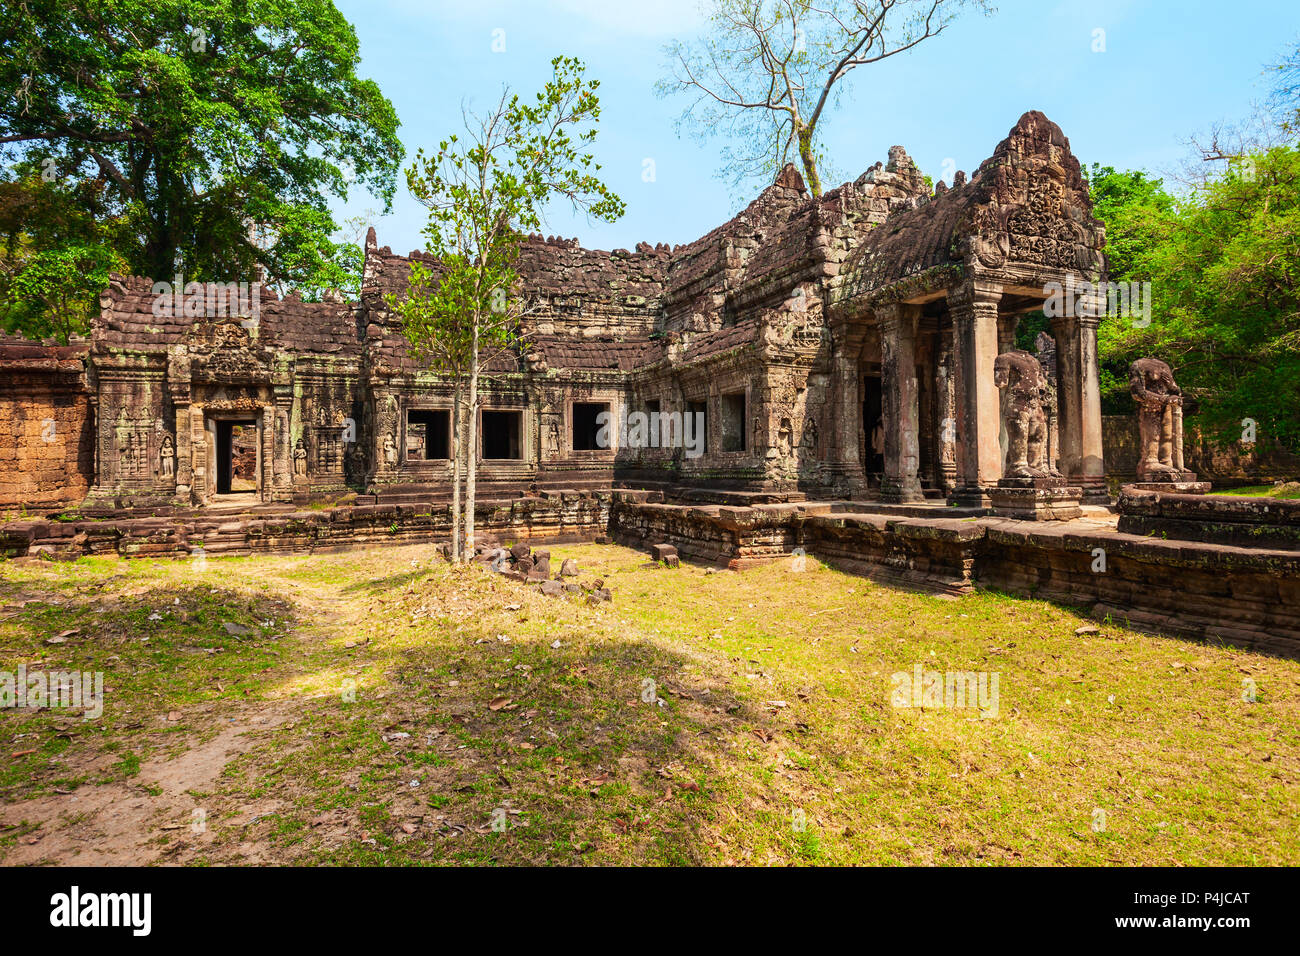 Preah Khan is a temple at Angkor in Cambodia. Preah Khan is located northeast of Angkor Thom temple. - Stock Image